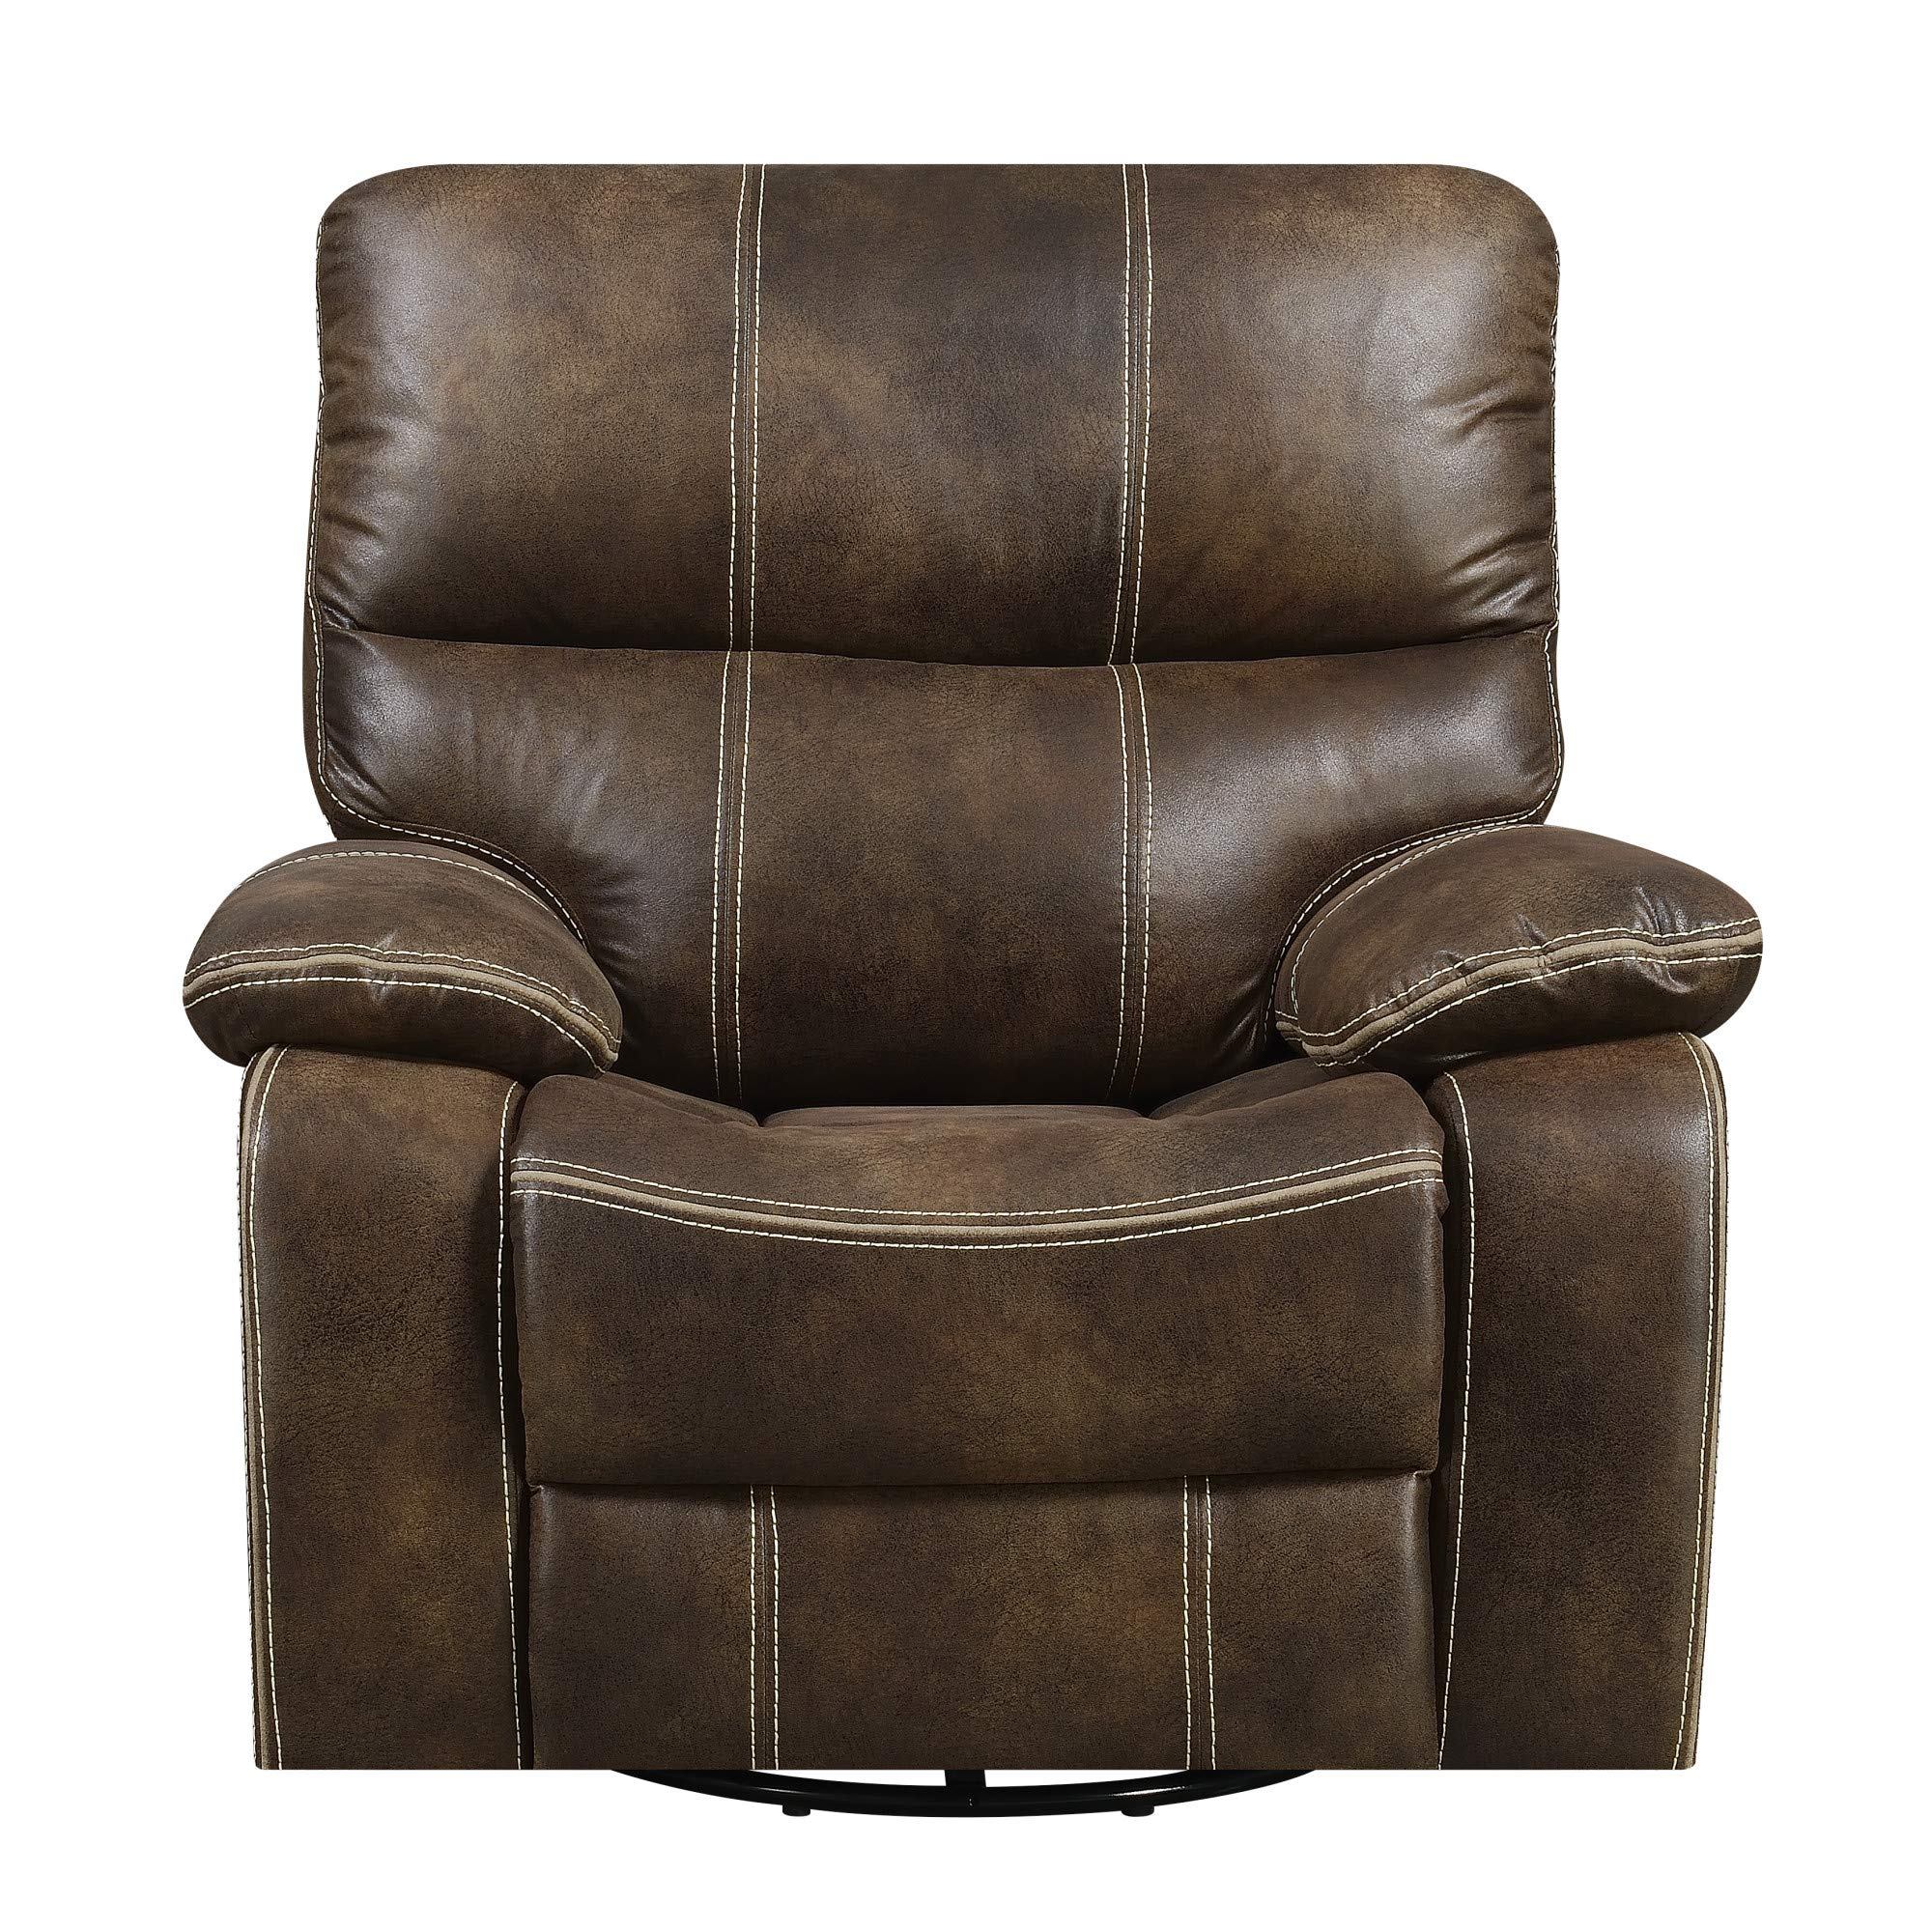 Bassfield Swivel Reclining Glider in Brown with Swivel, Glide, And Recline Motion, by Artum Hill by Artum Hill